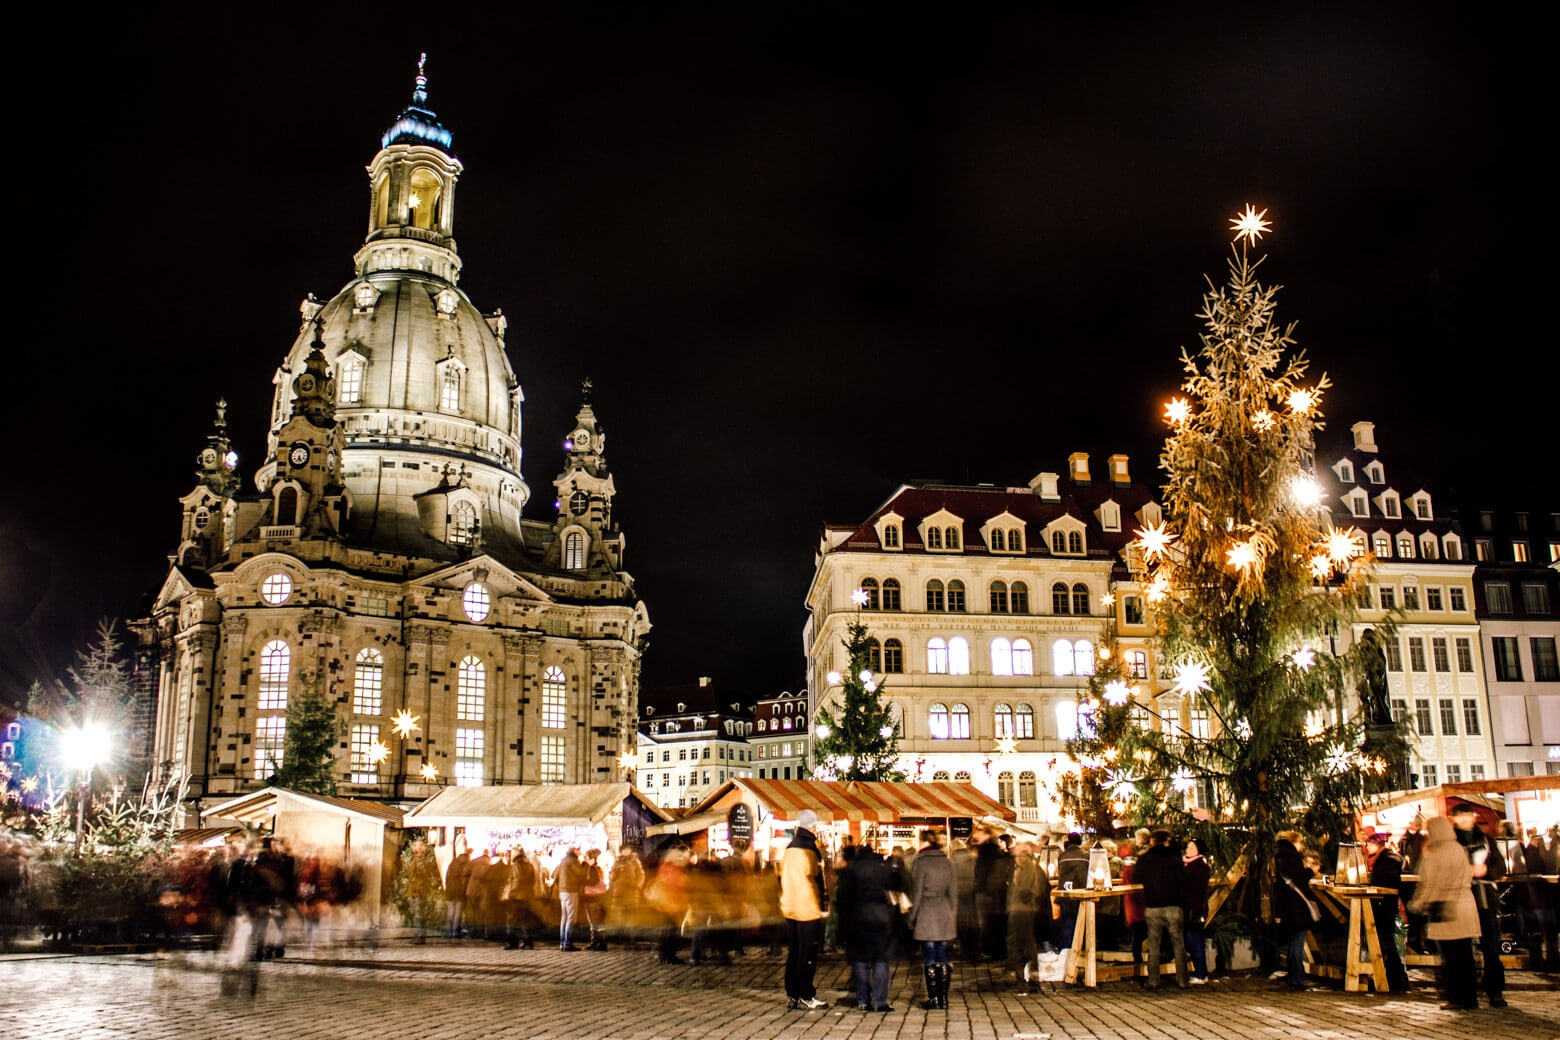 Qf Hotel Dresden Christmas In Dresden: Germany's Most Beautiful City